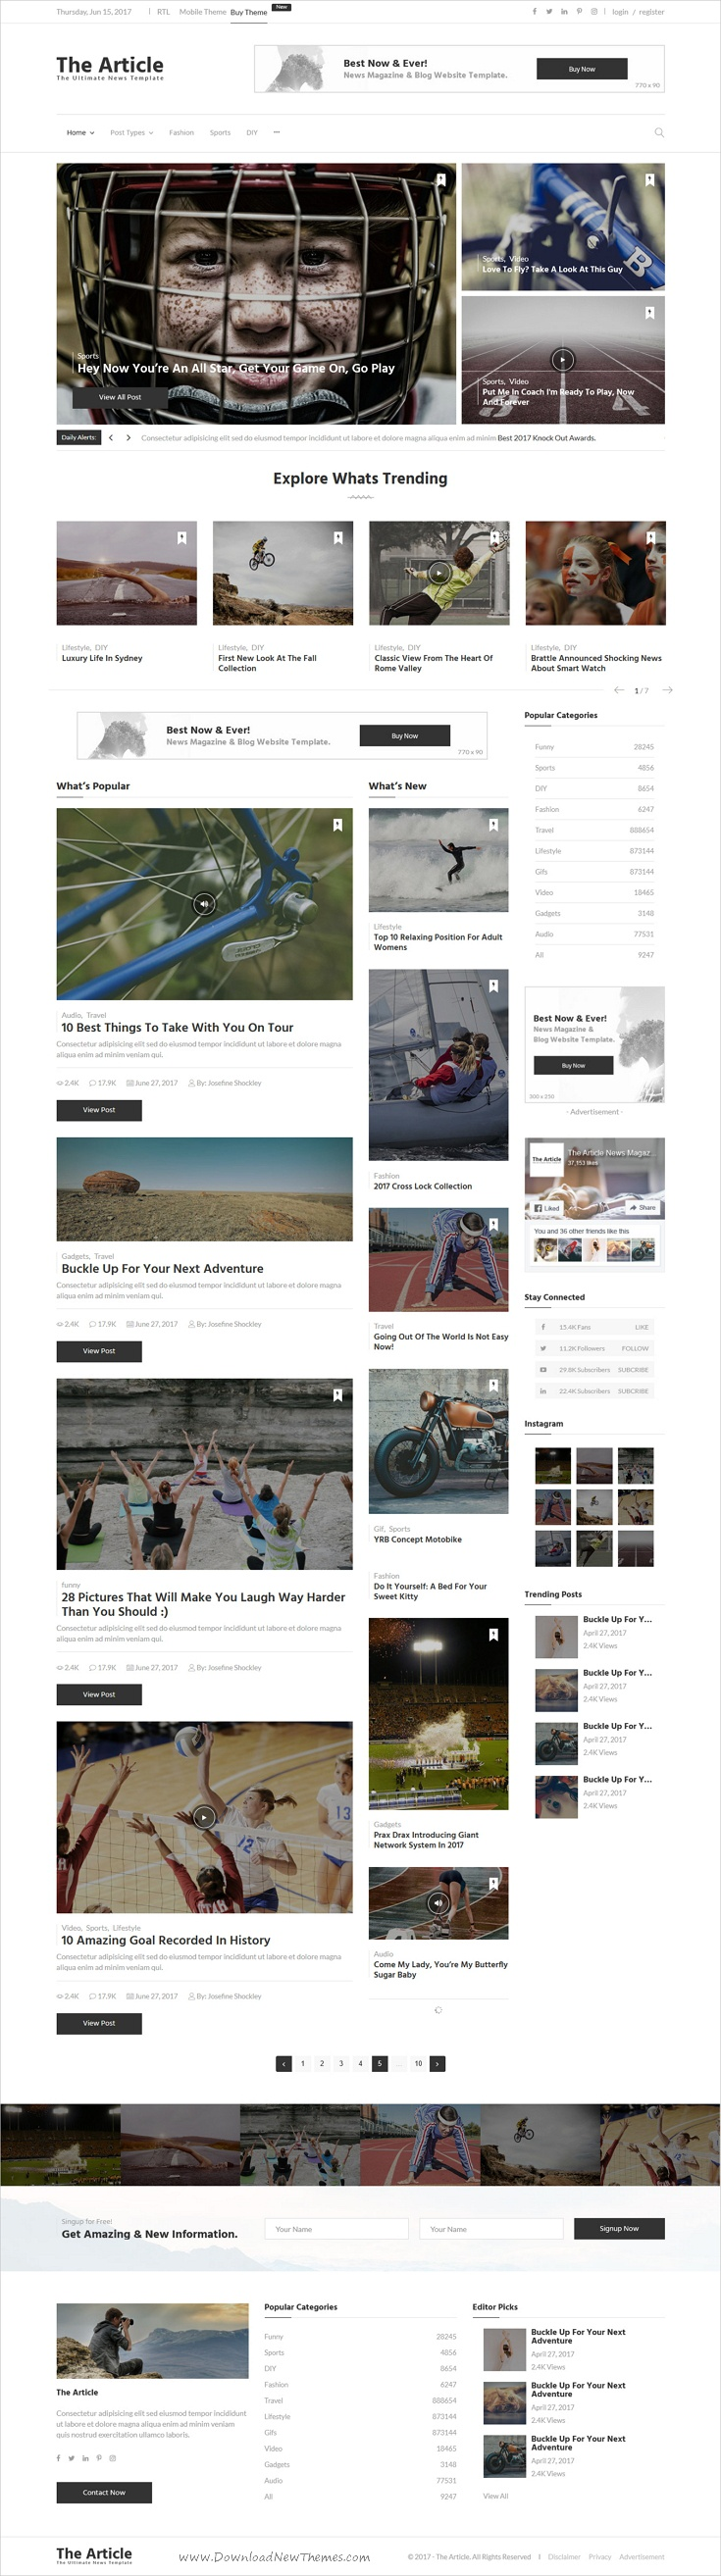 News Article and Blog - Modern Template for Blogs, Magazines and ...